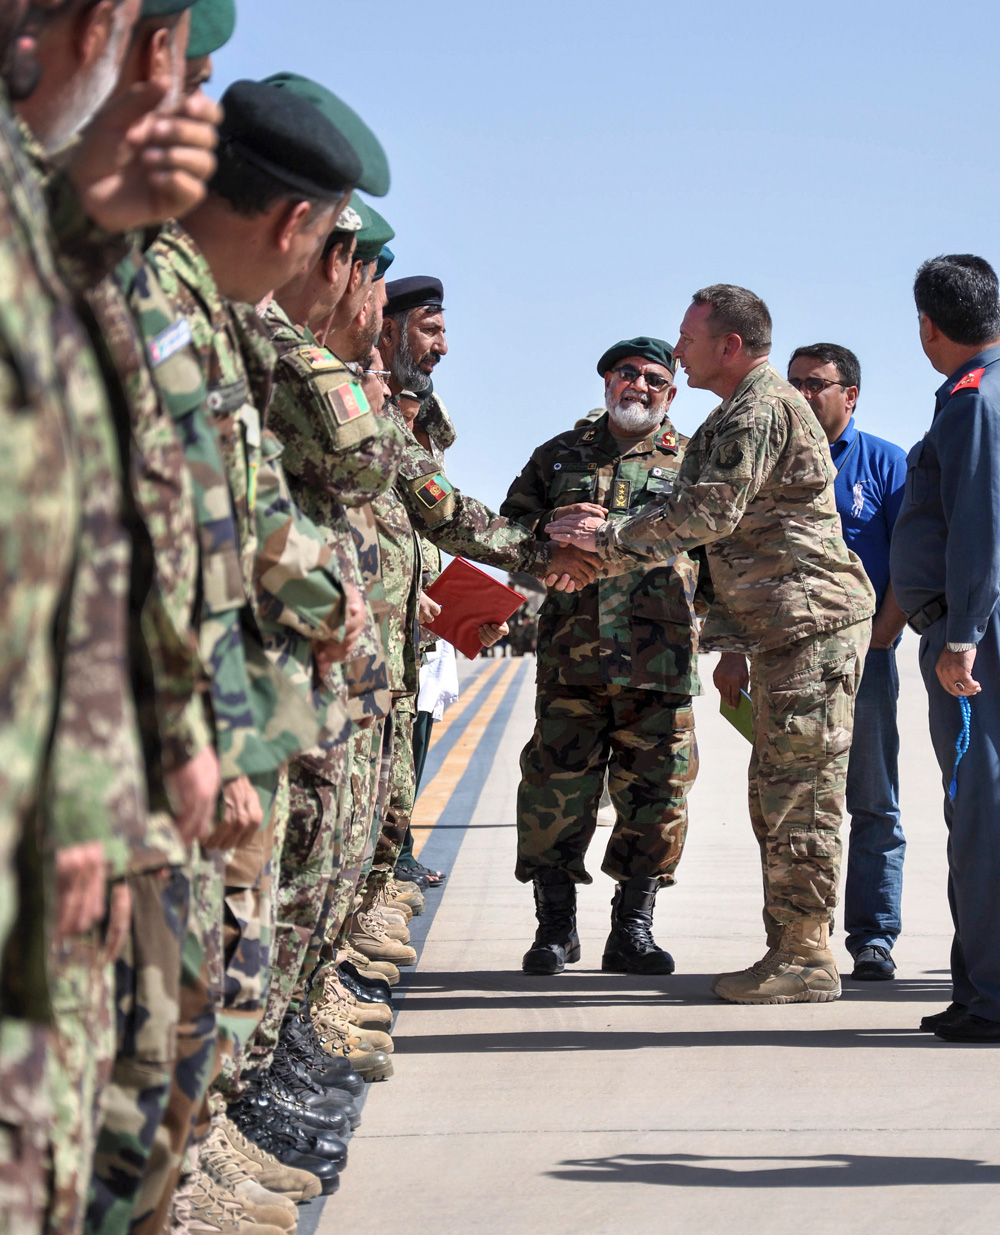 Resolute Support for Afghan Security Forces